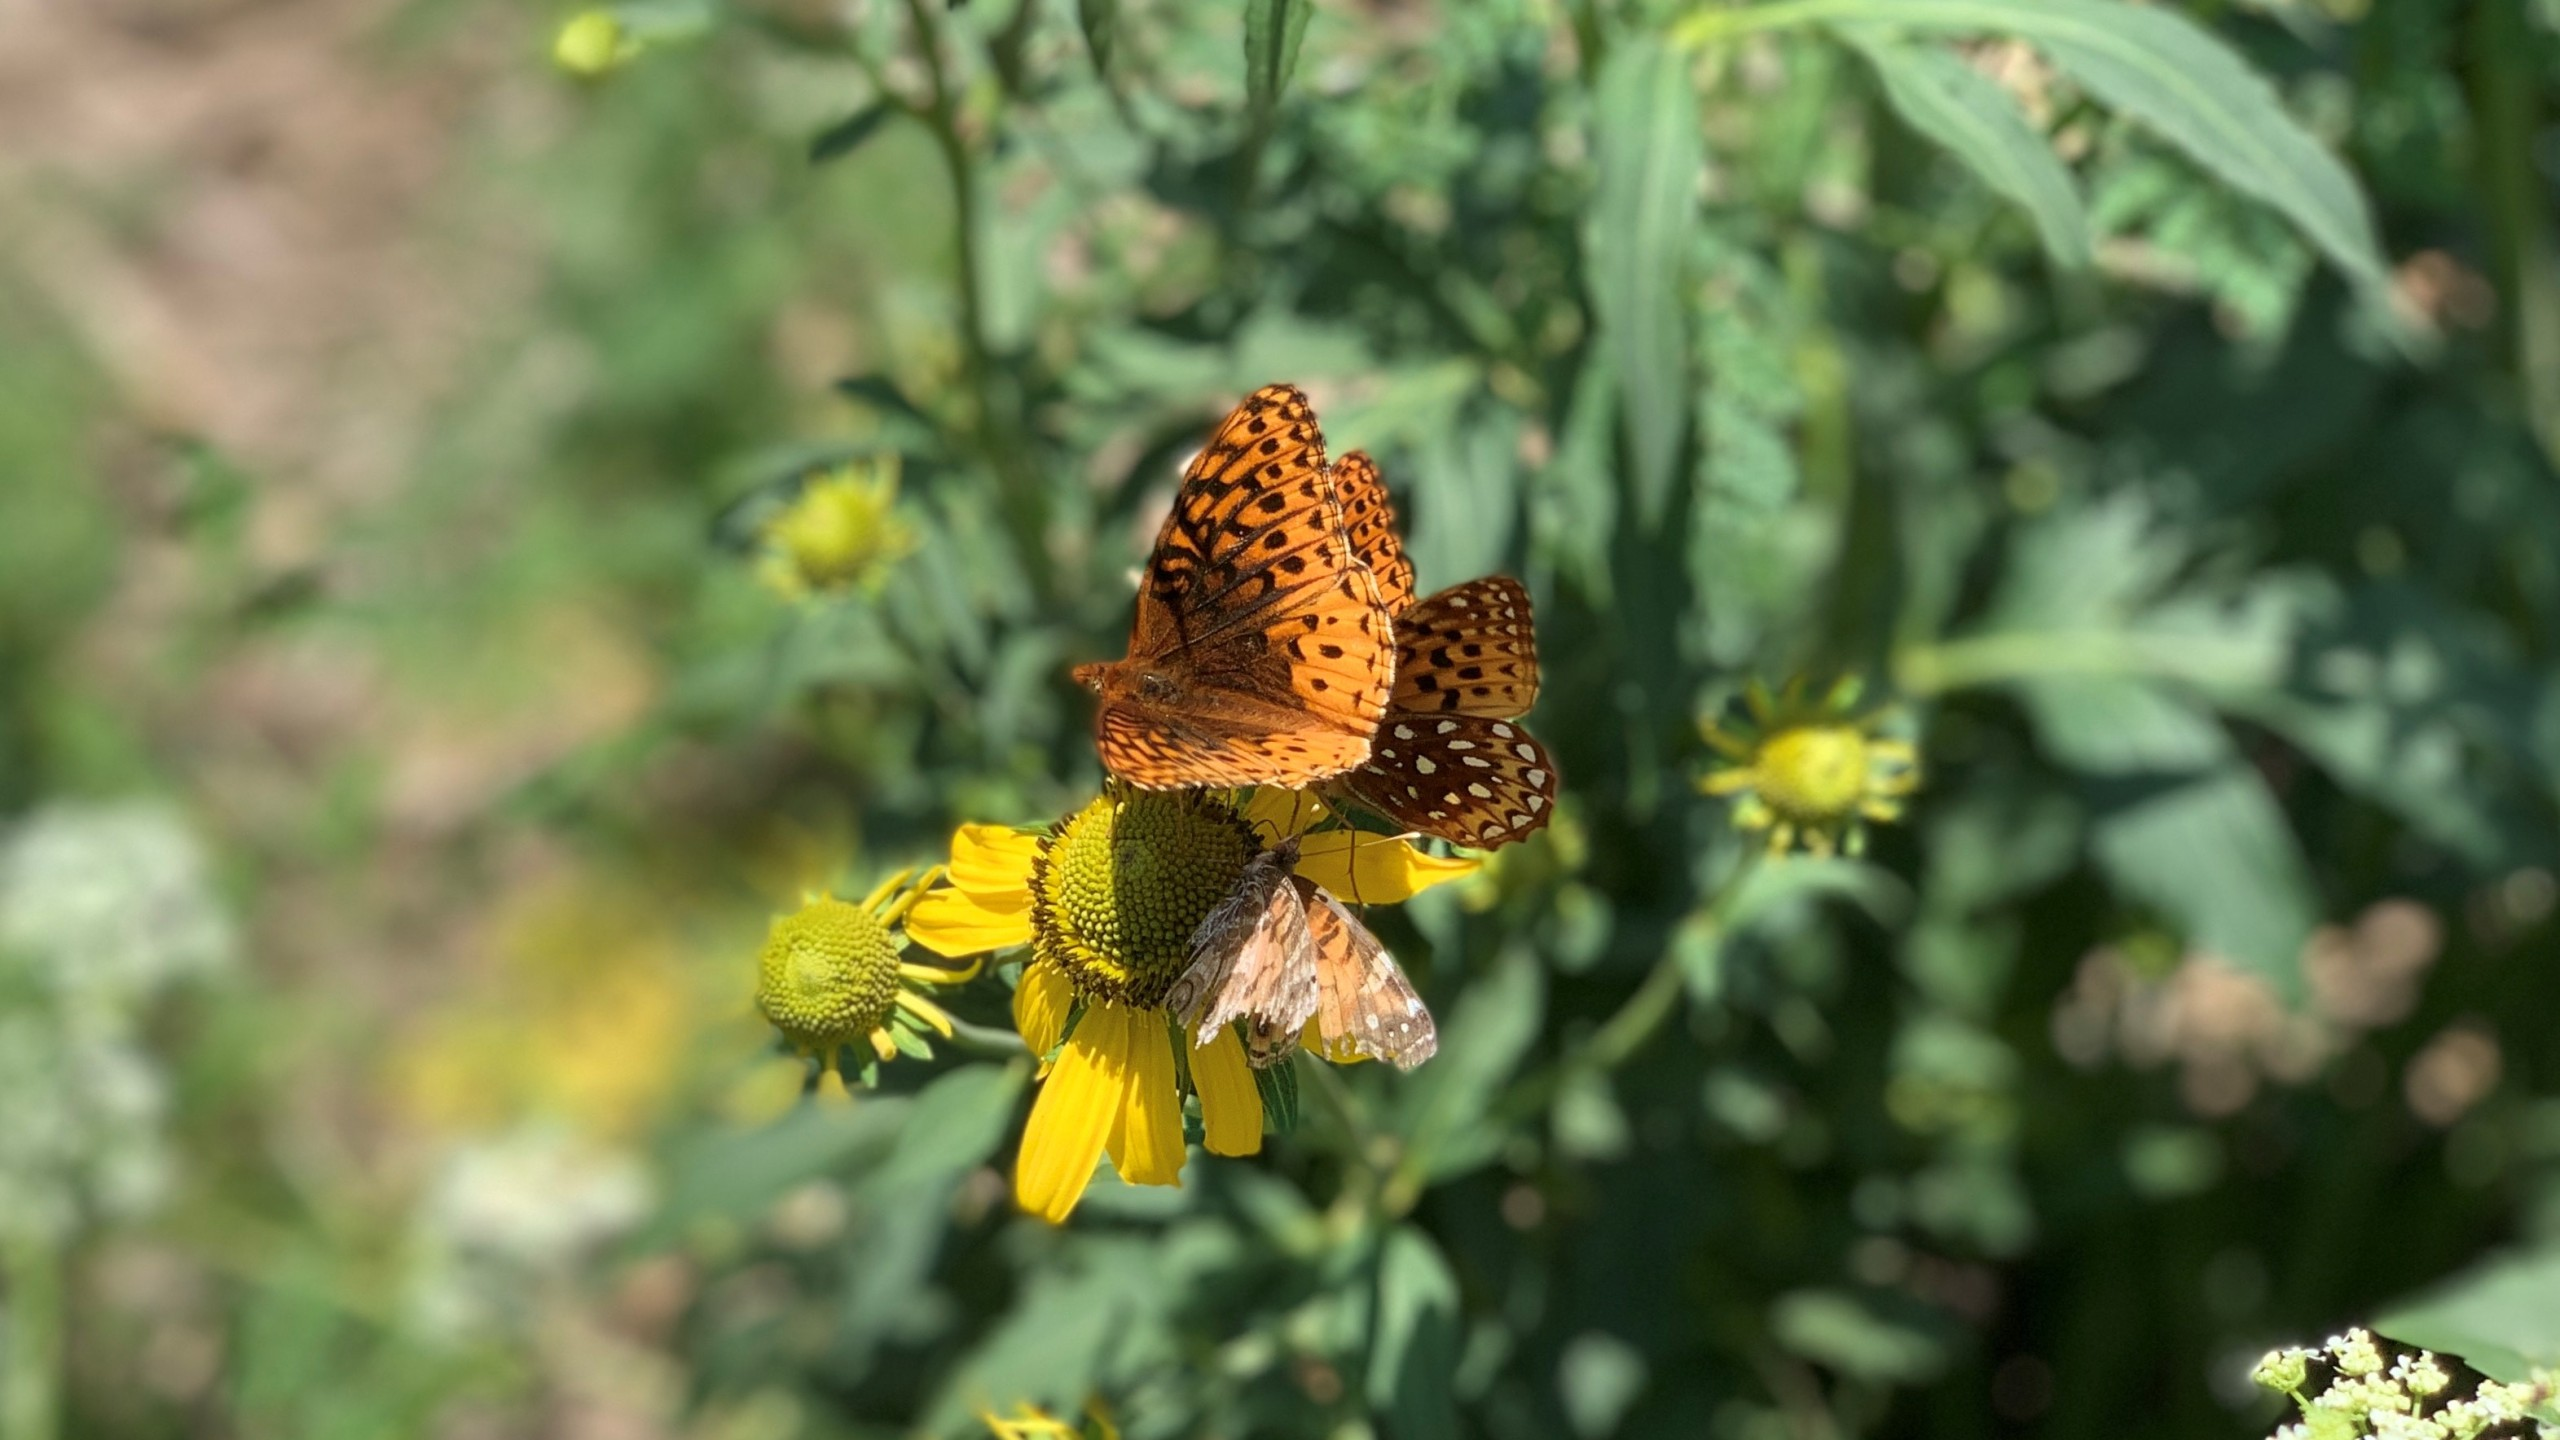 An orange and black butterfly rests on a yellow flower.